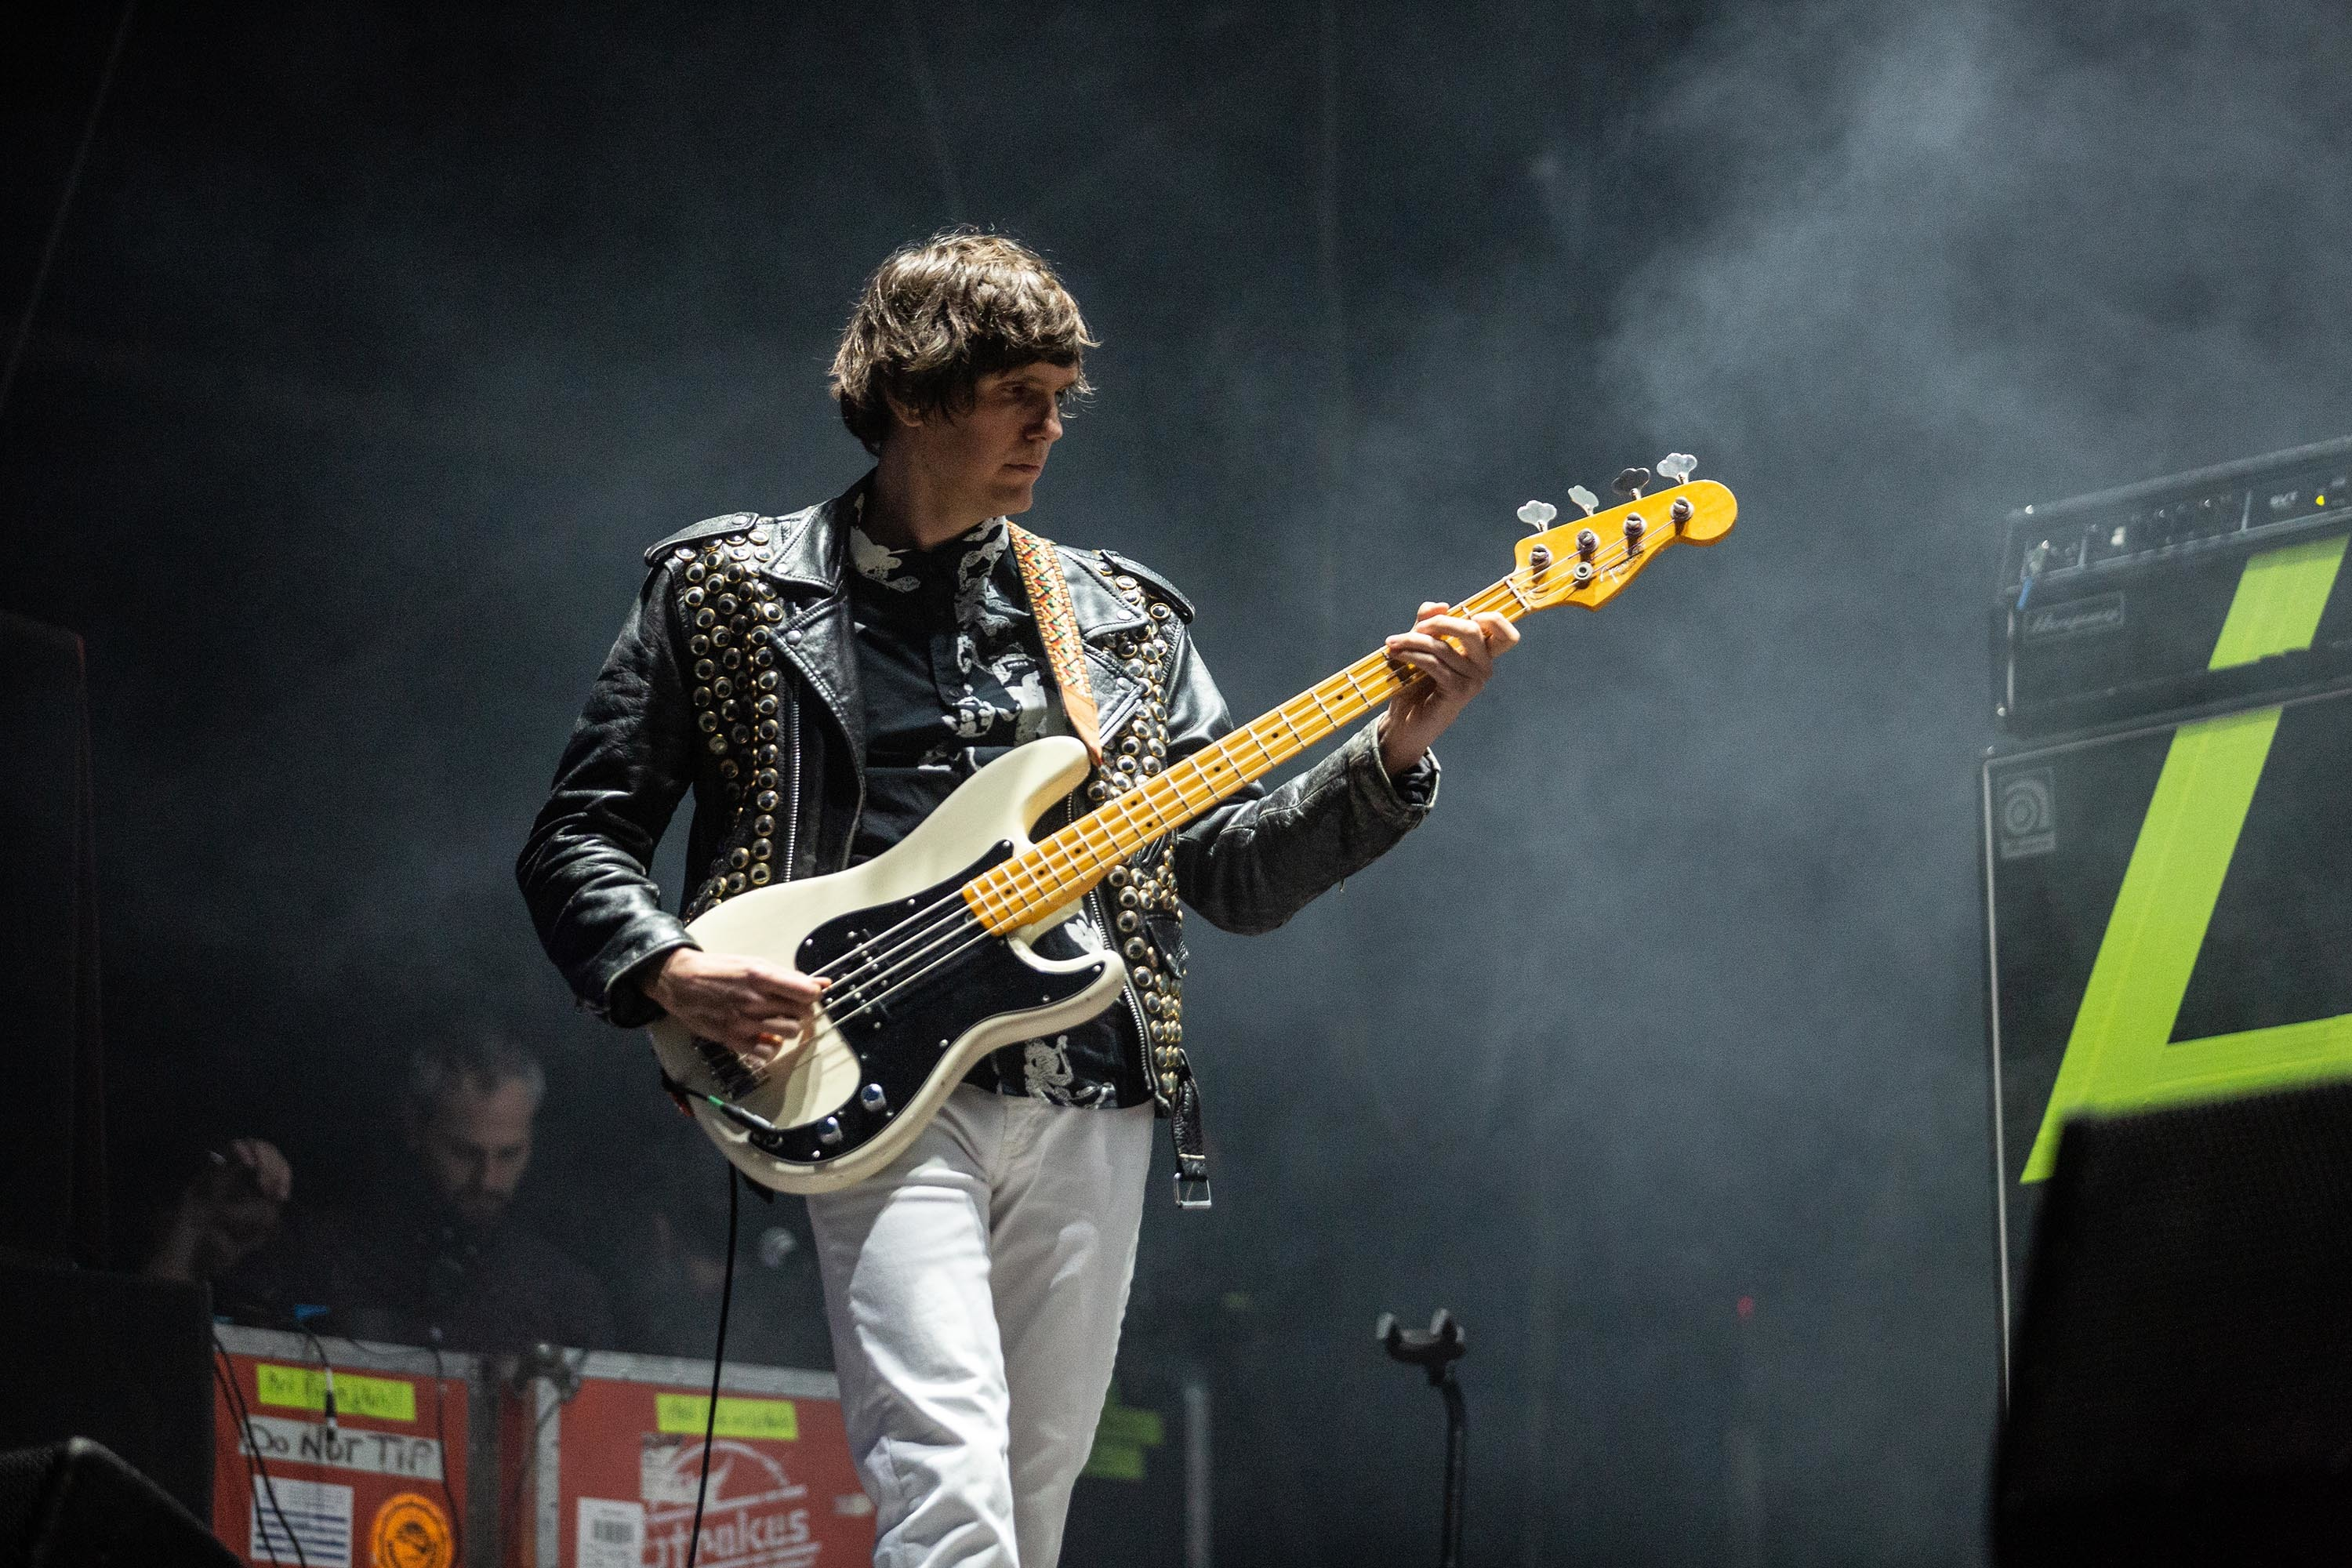 Sound problems mar the main stage, but a killer line-up wins through as The Strokes take on All Points East